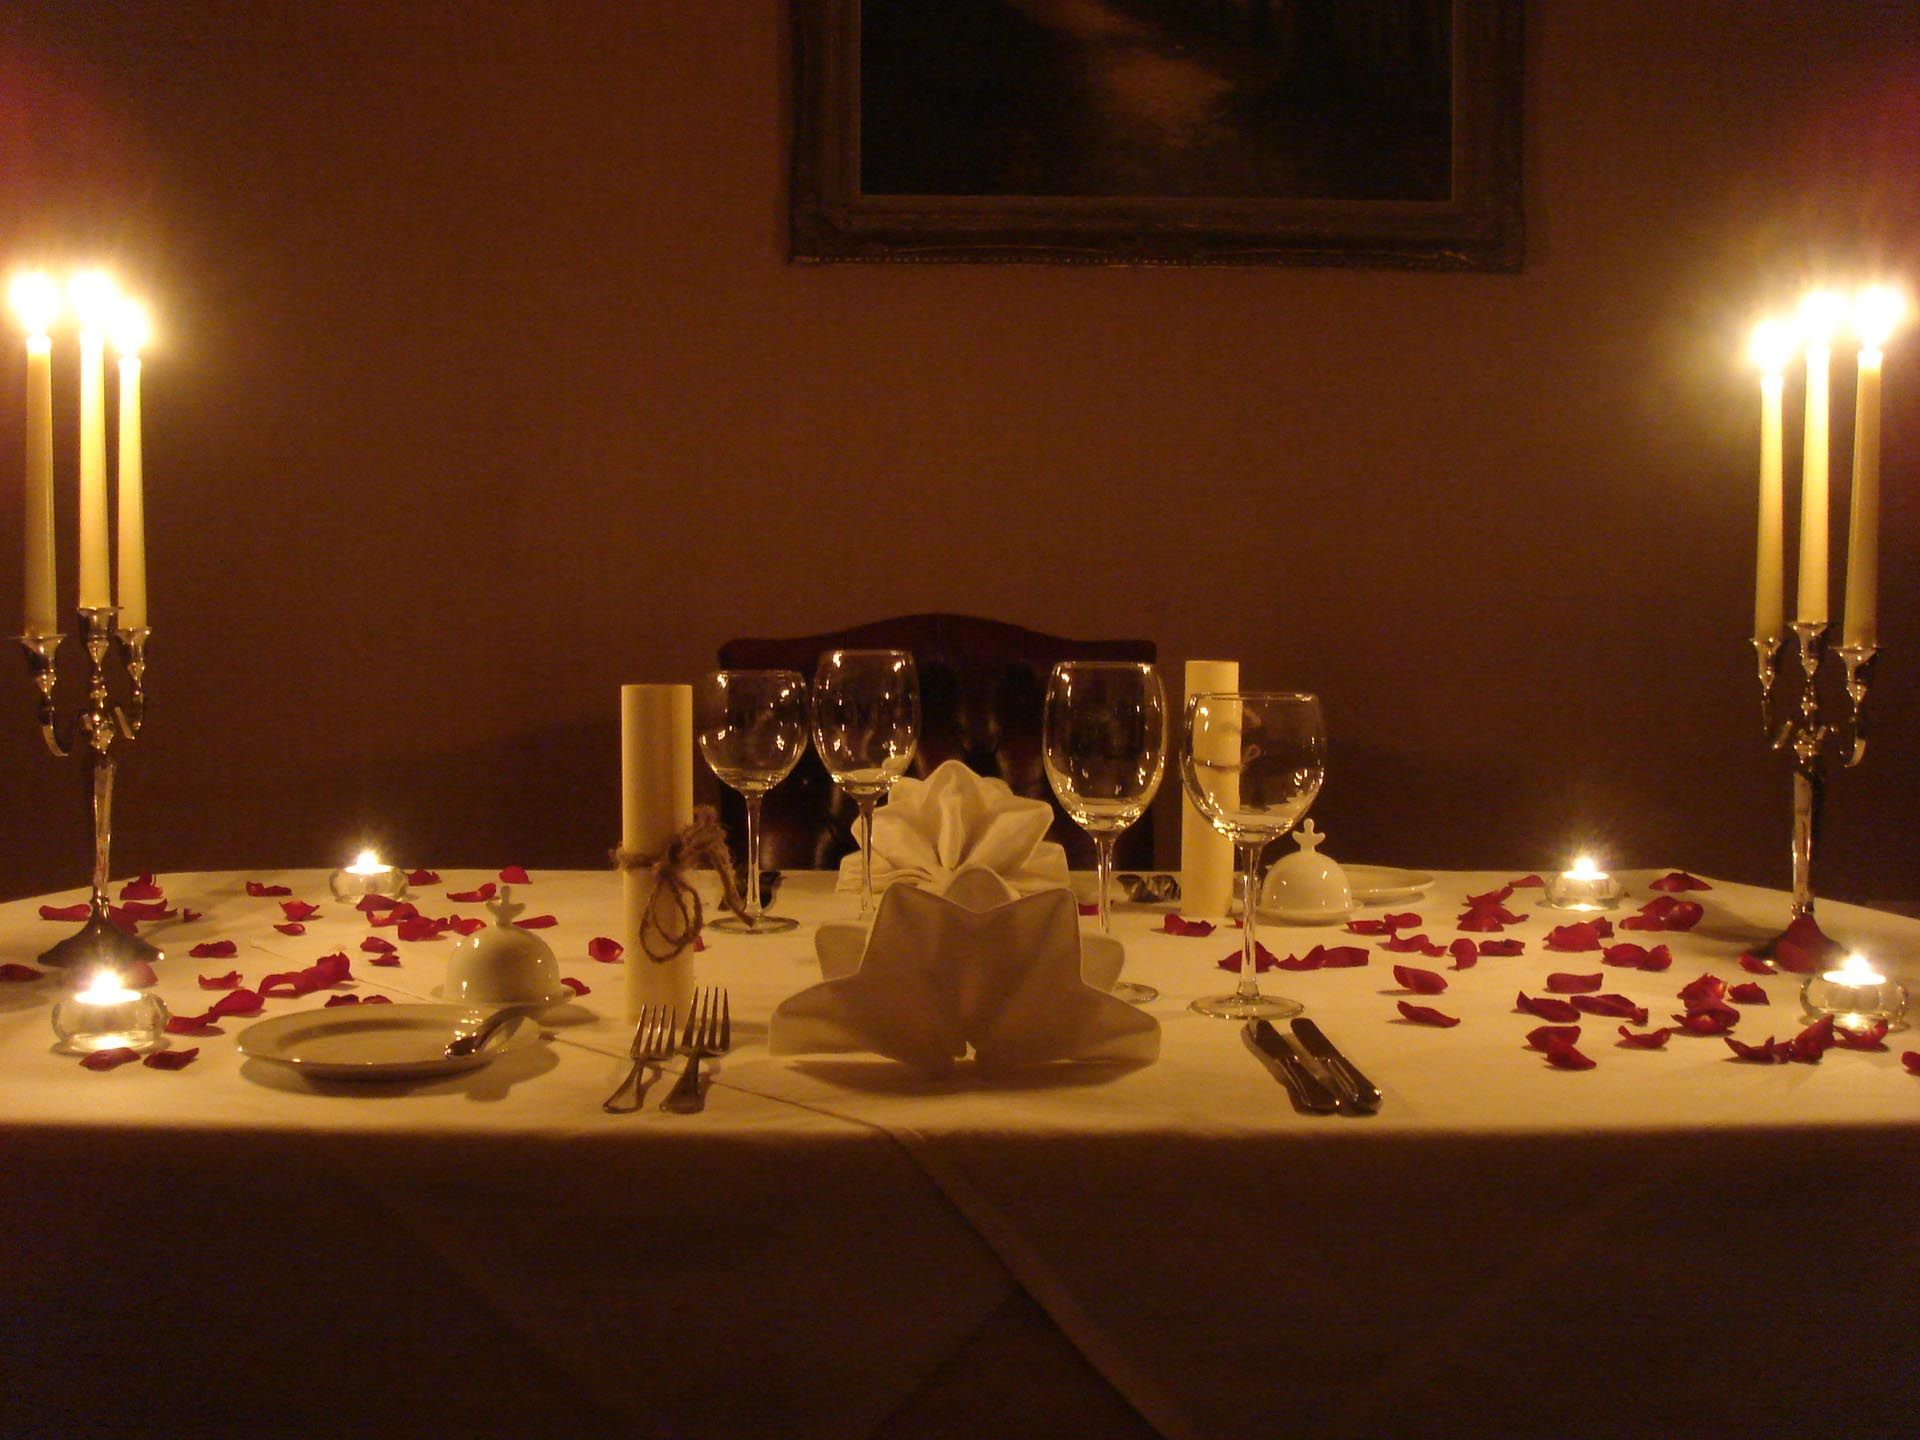 Candle light dinner table for two - Romantic Candles A Romantic Romantic Candle Light Dinner Candle Light Dinners Romantic Dinners Dinner Table